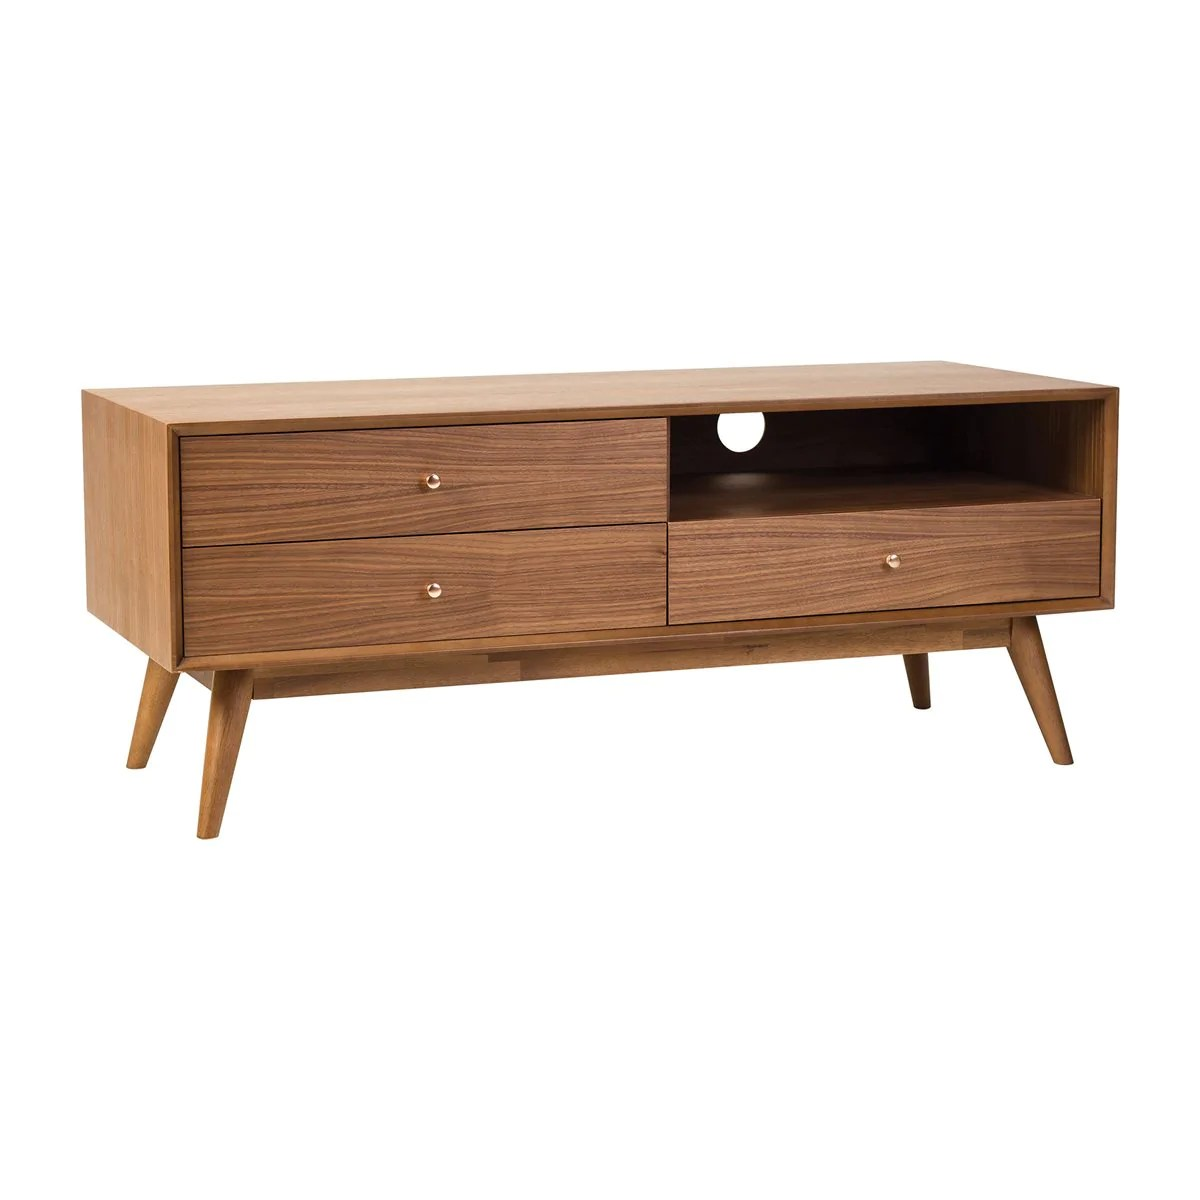 Lovecup Mid Century Modern Media Cabinet L012 Lovecup